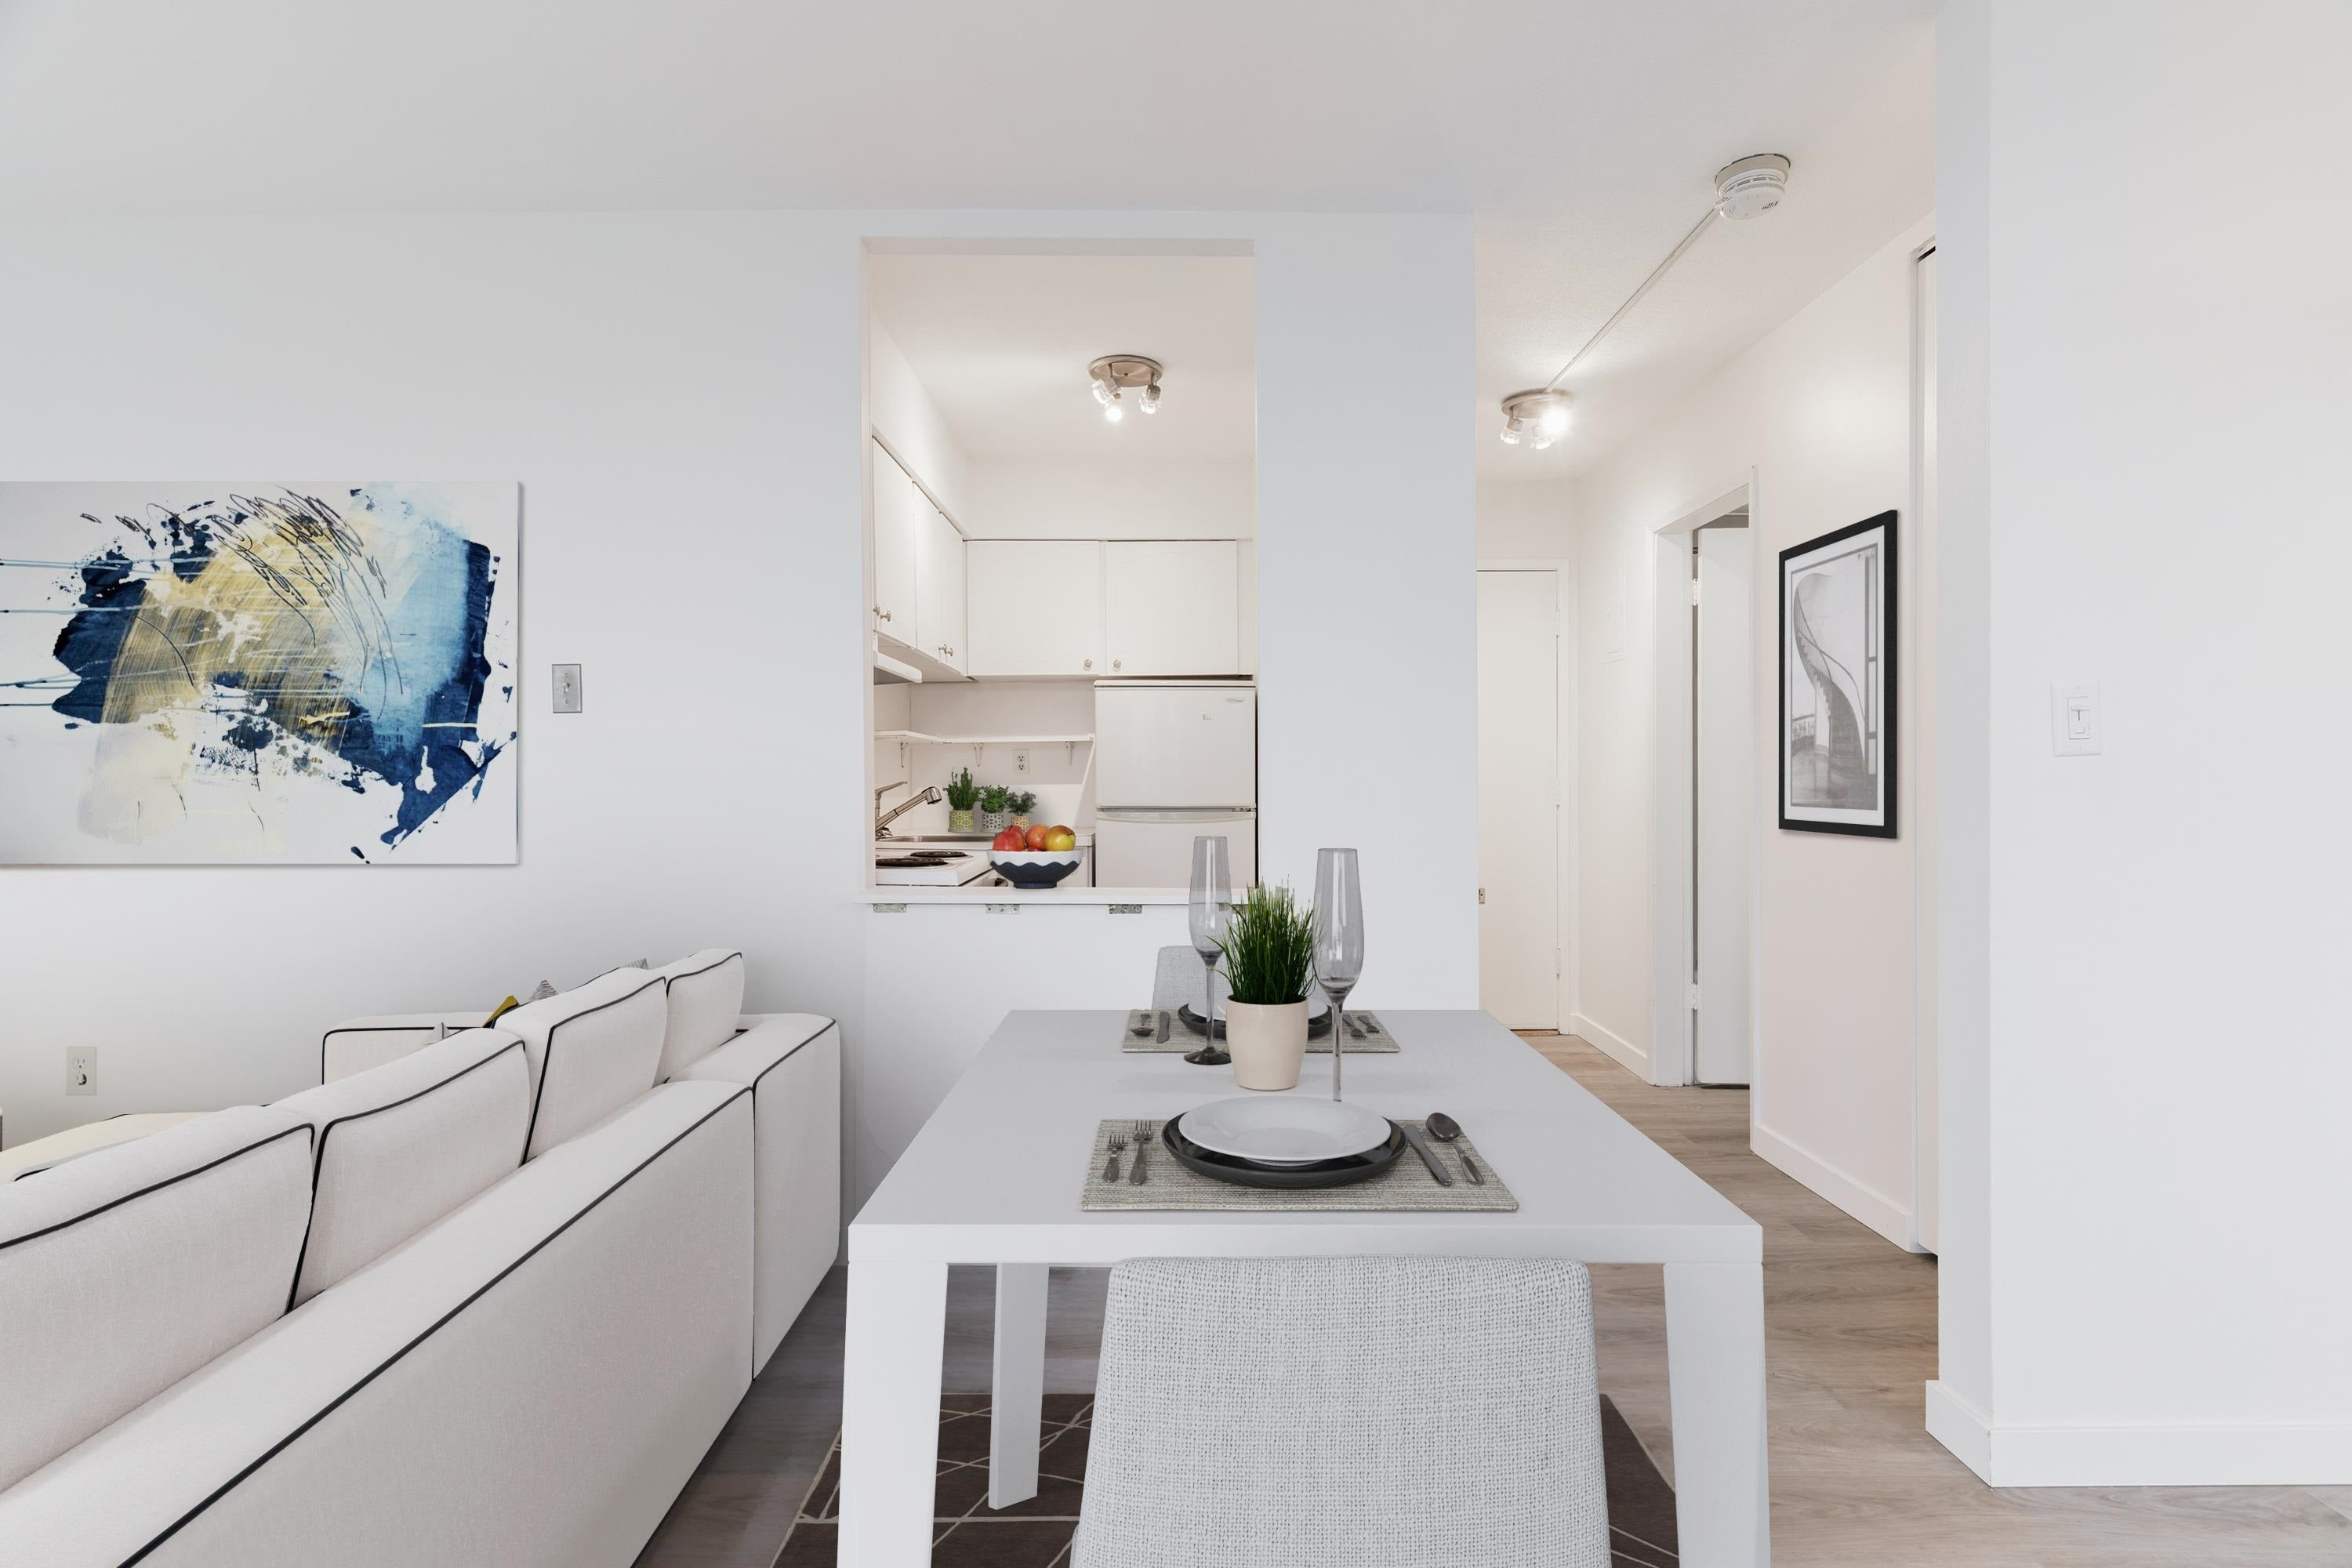 806 1251 CARDERO STREET - West End VW Apartment/Condo for sale, 1 Bedroom (R2625738) - #10